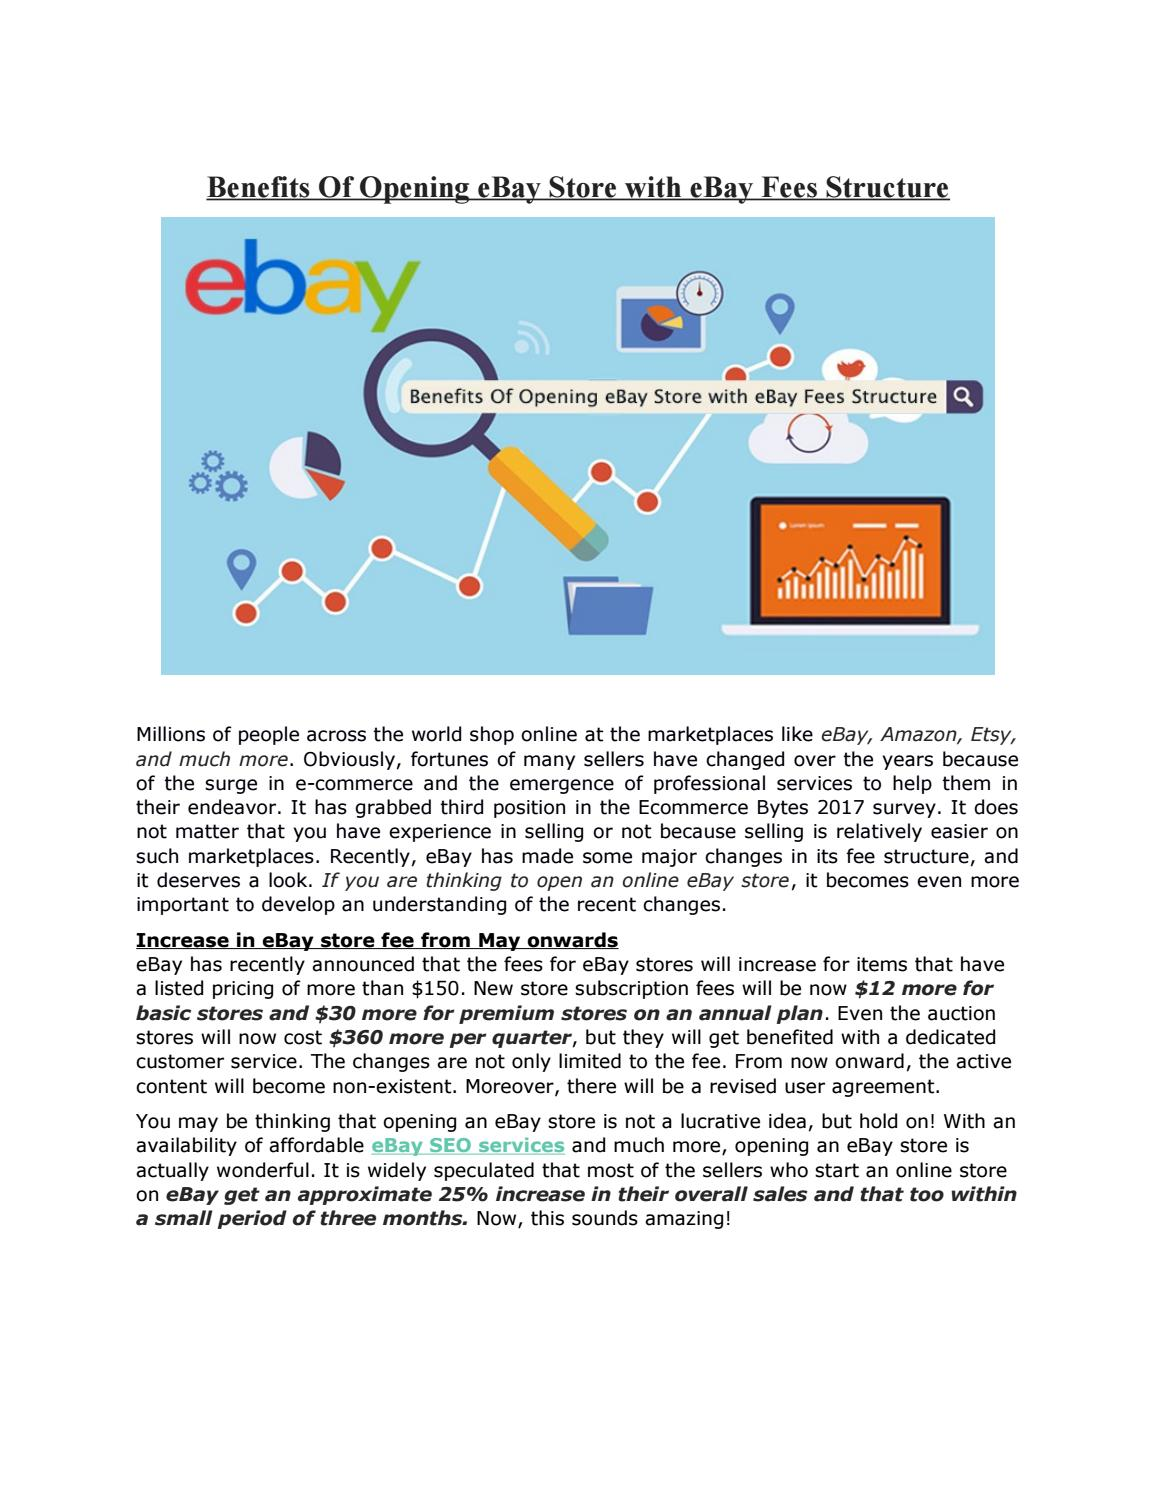 Benefits Of Opening Ebay Store With Ebay Fees Structure By Estore Factory Issuu